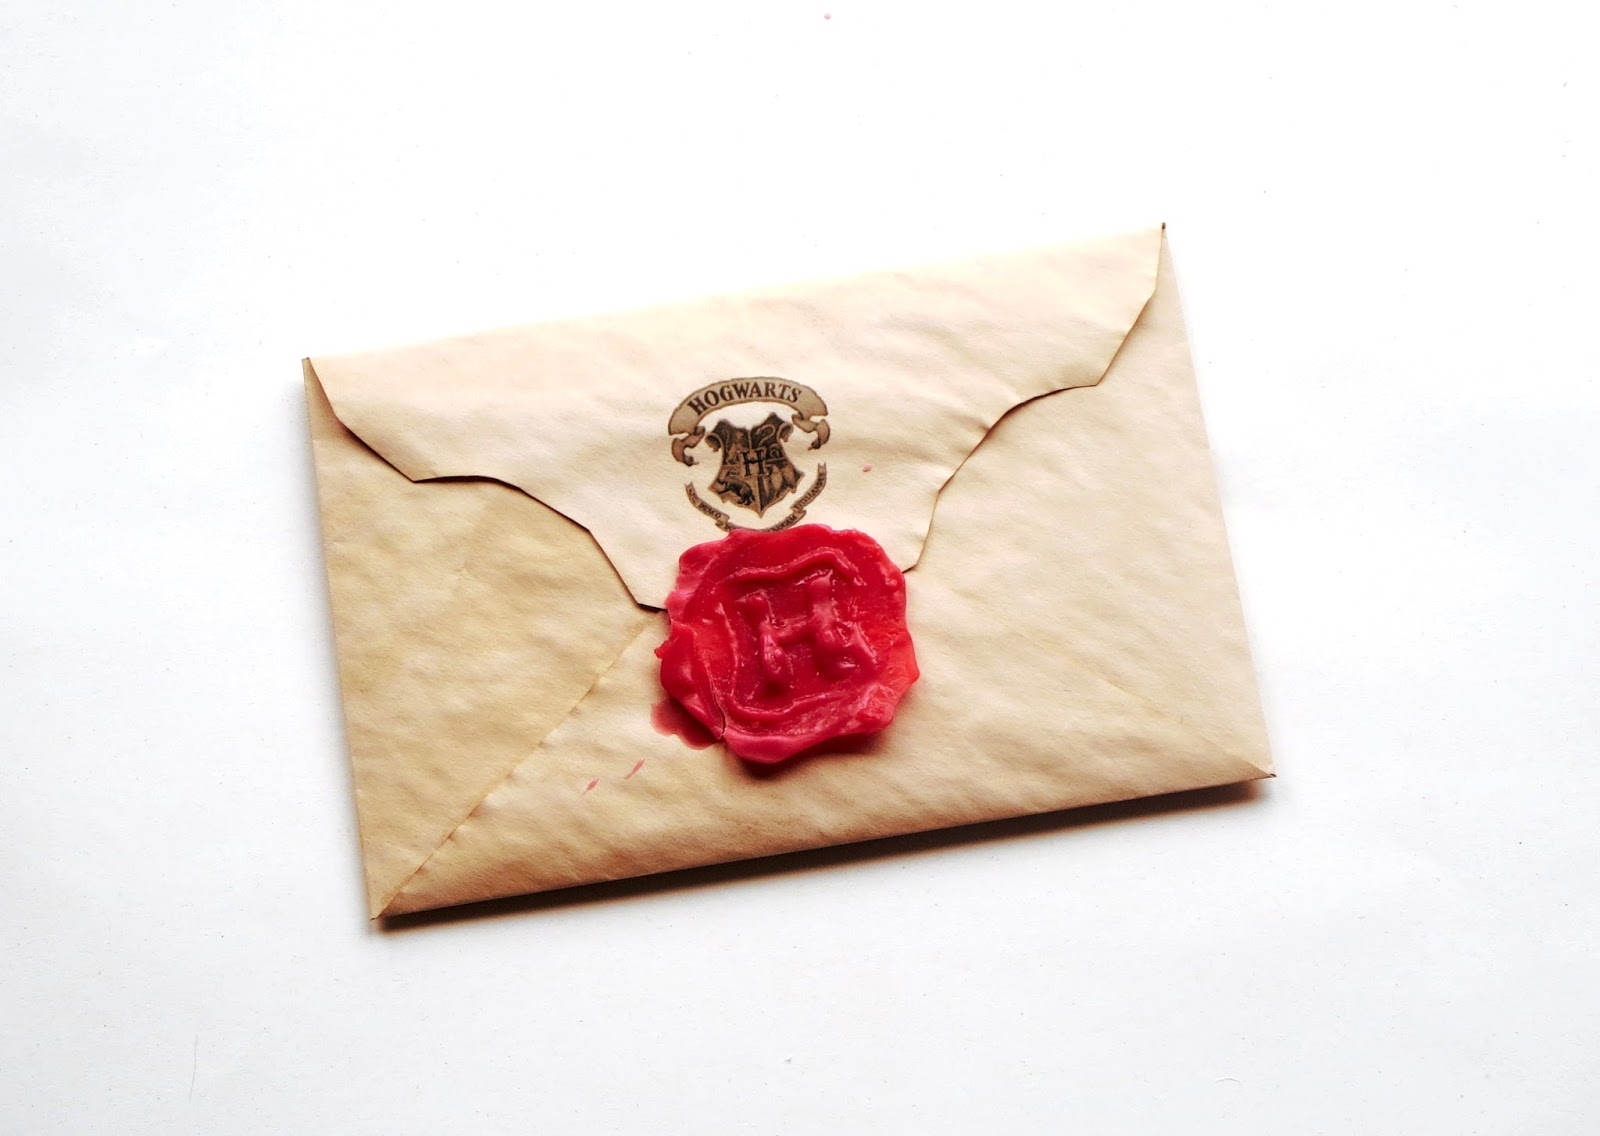 Close Your Envelope Glue It Shut If You Want To That Makes Easier Attach The Seal Now Drip Some Wax Onto Place And Press Gently